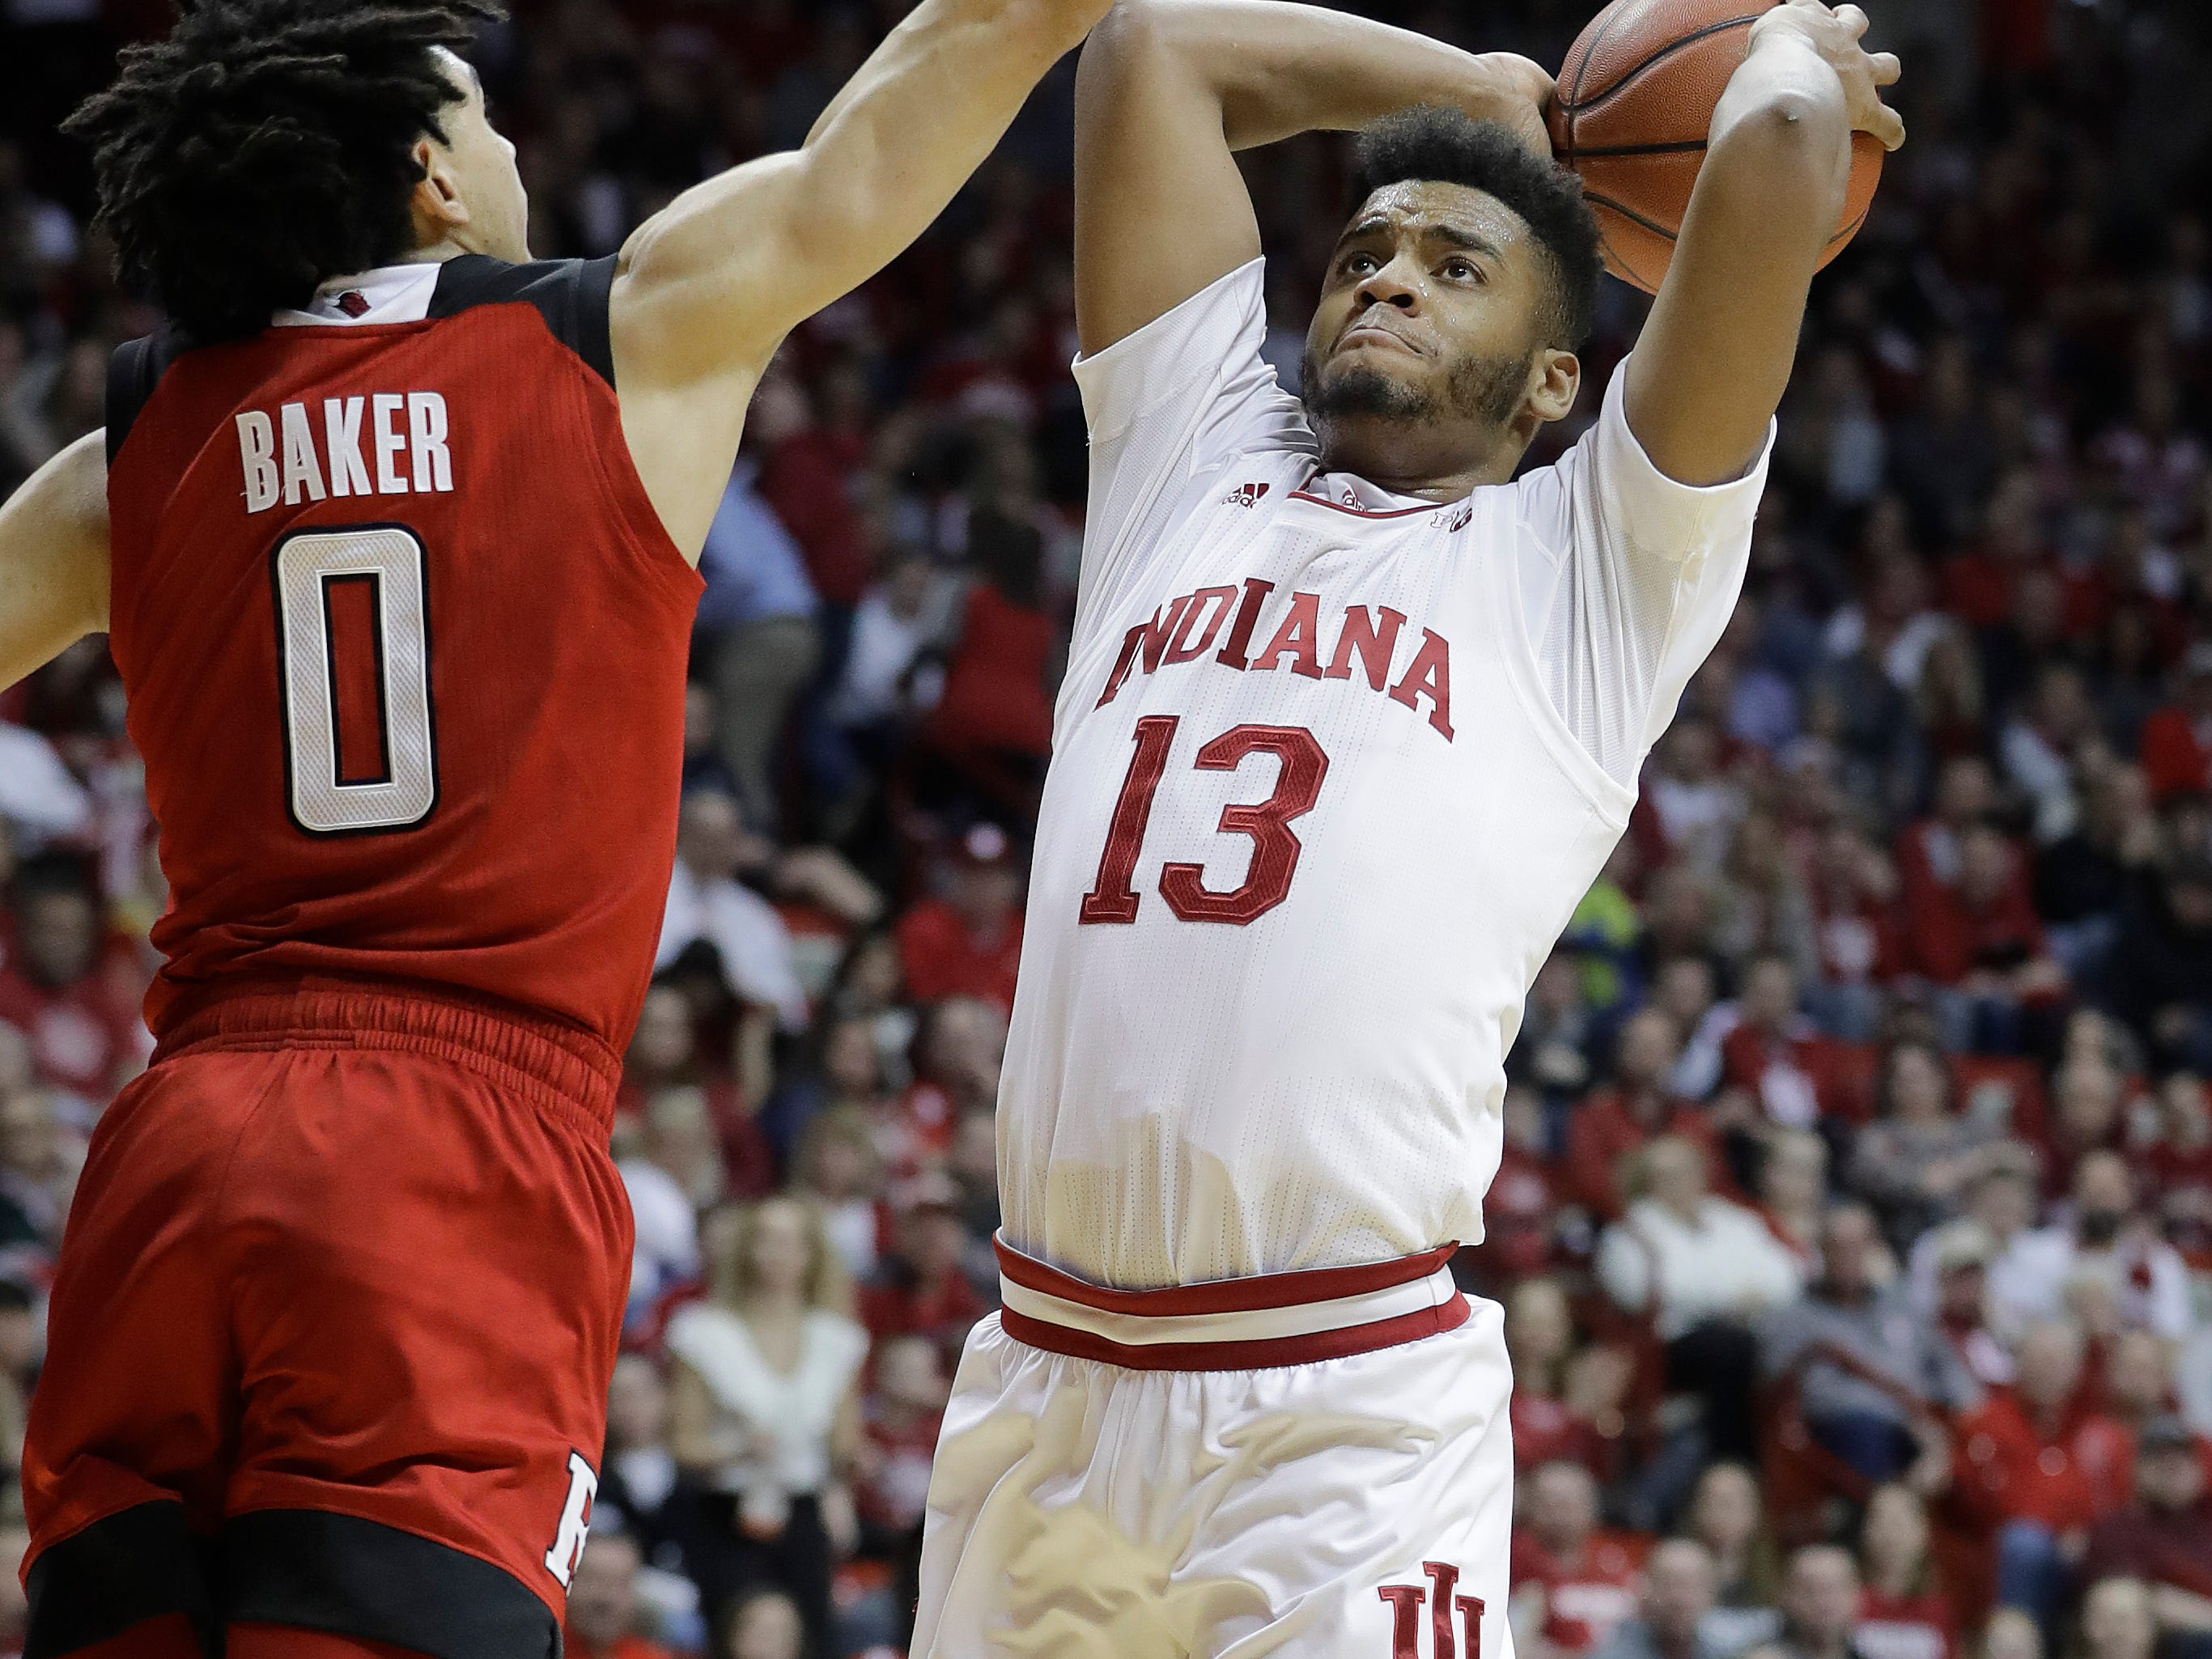 8. Indiana (17-14, 8-12): The Hoosiers have come out of nowhere to put themselves right back in the NCAA Tournament picture, closing the regular season with four consecutive victories, including back-to-back wins over Wisconsin and Michigan State. While they're back in the bubble discussion, the Hoosiers almost certainly have to win at least one game at the conference tournament and likely a couple to earn a spot in the NCAA Tournament. Last week: 10.